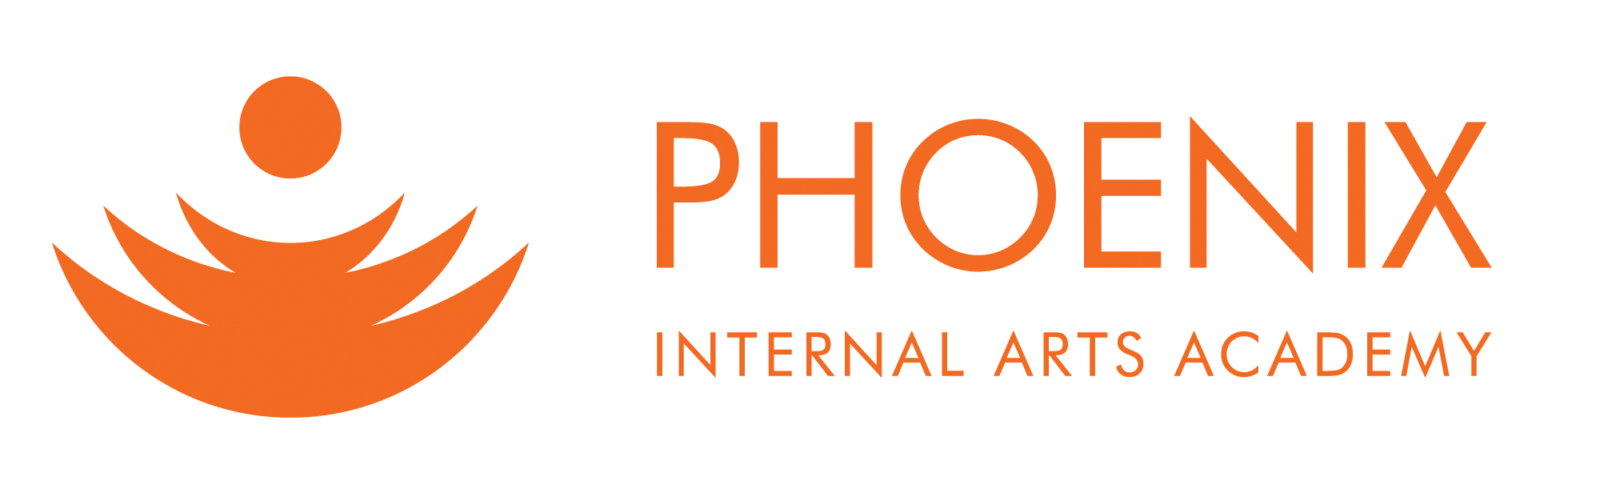 Phoenix Internal Arts Academy Inc.